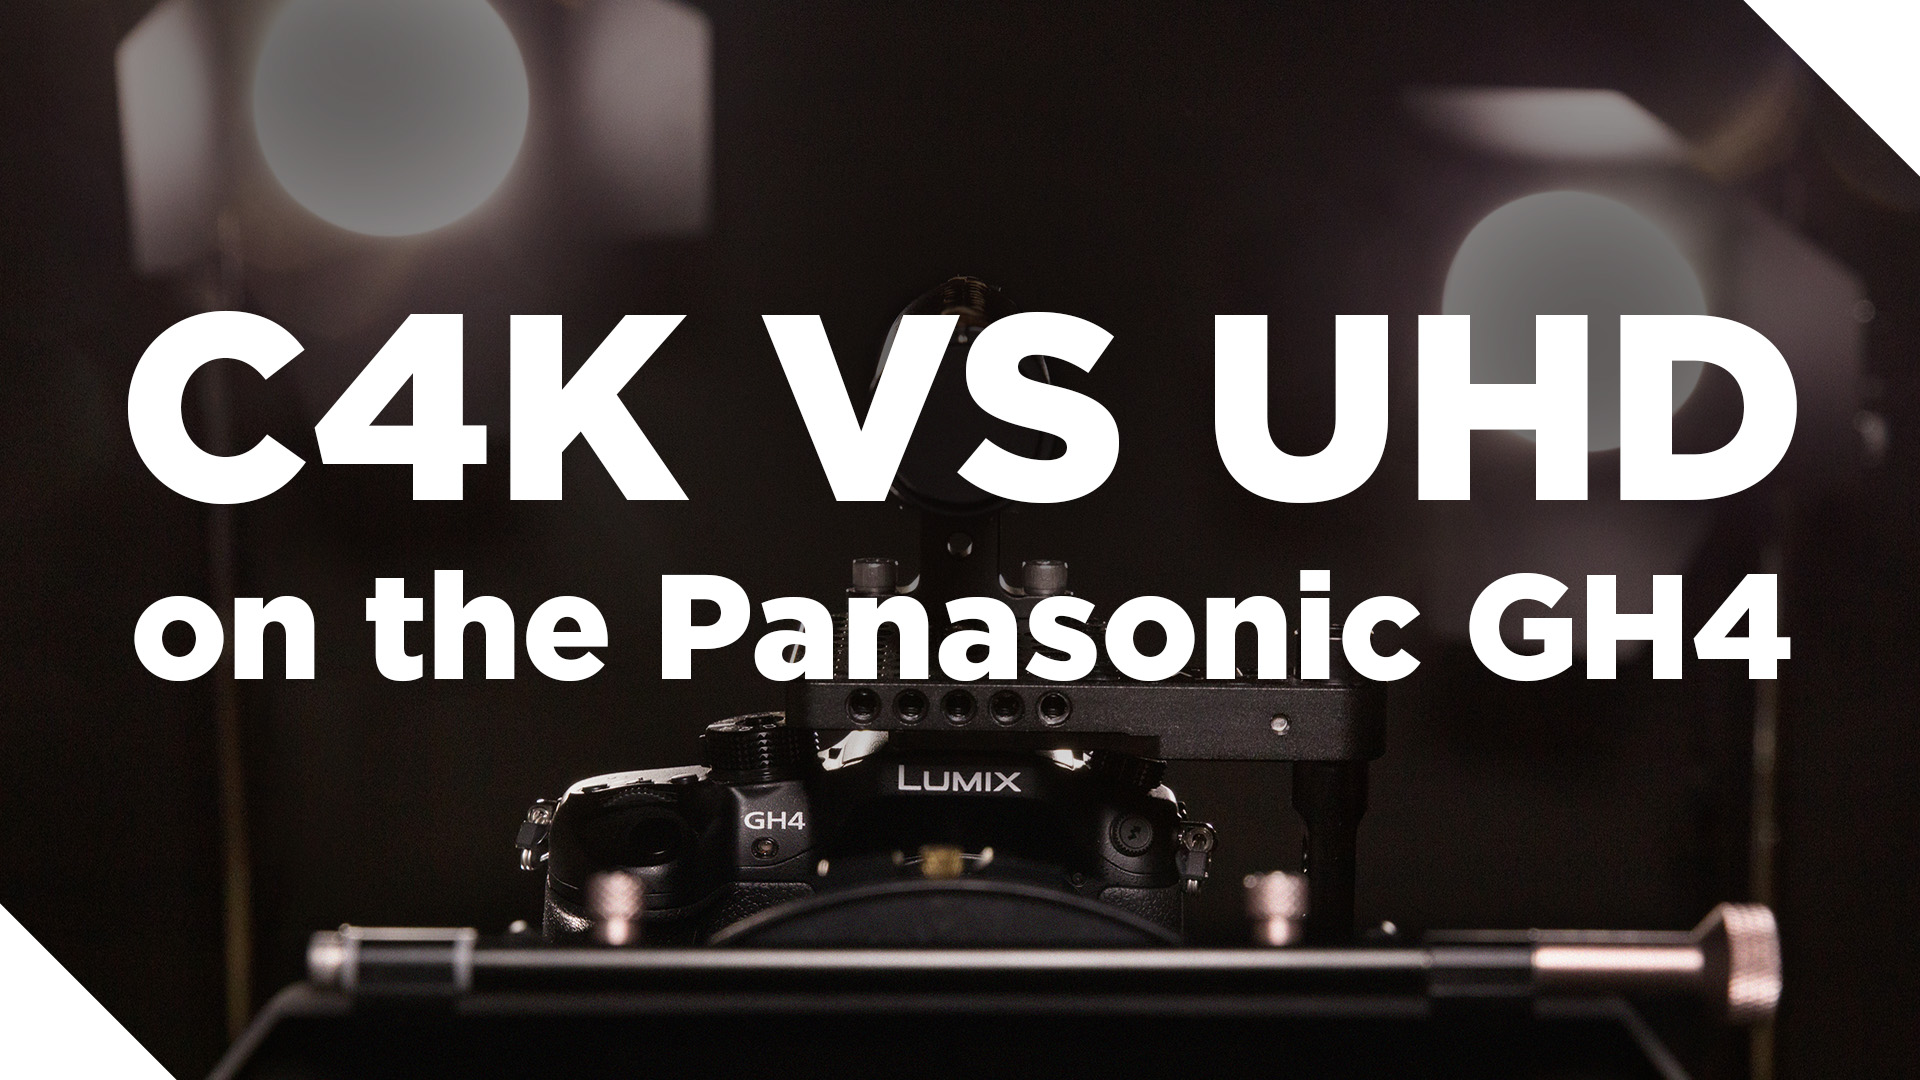 The Difference Between Cinema 4K and UHD